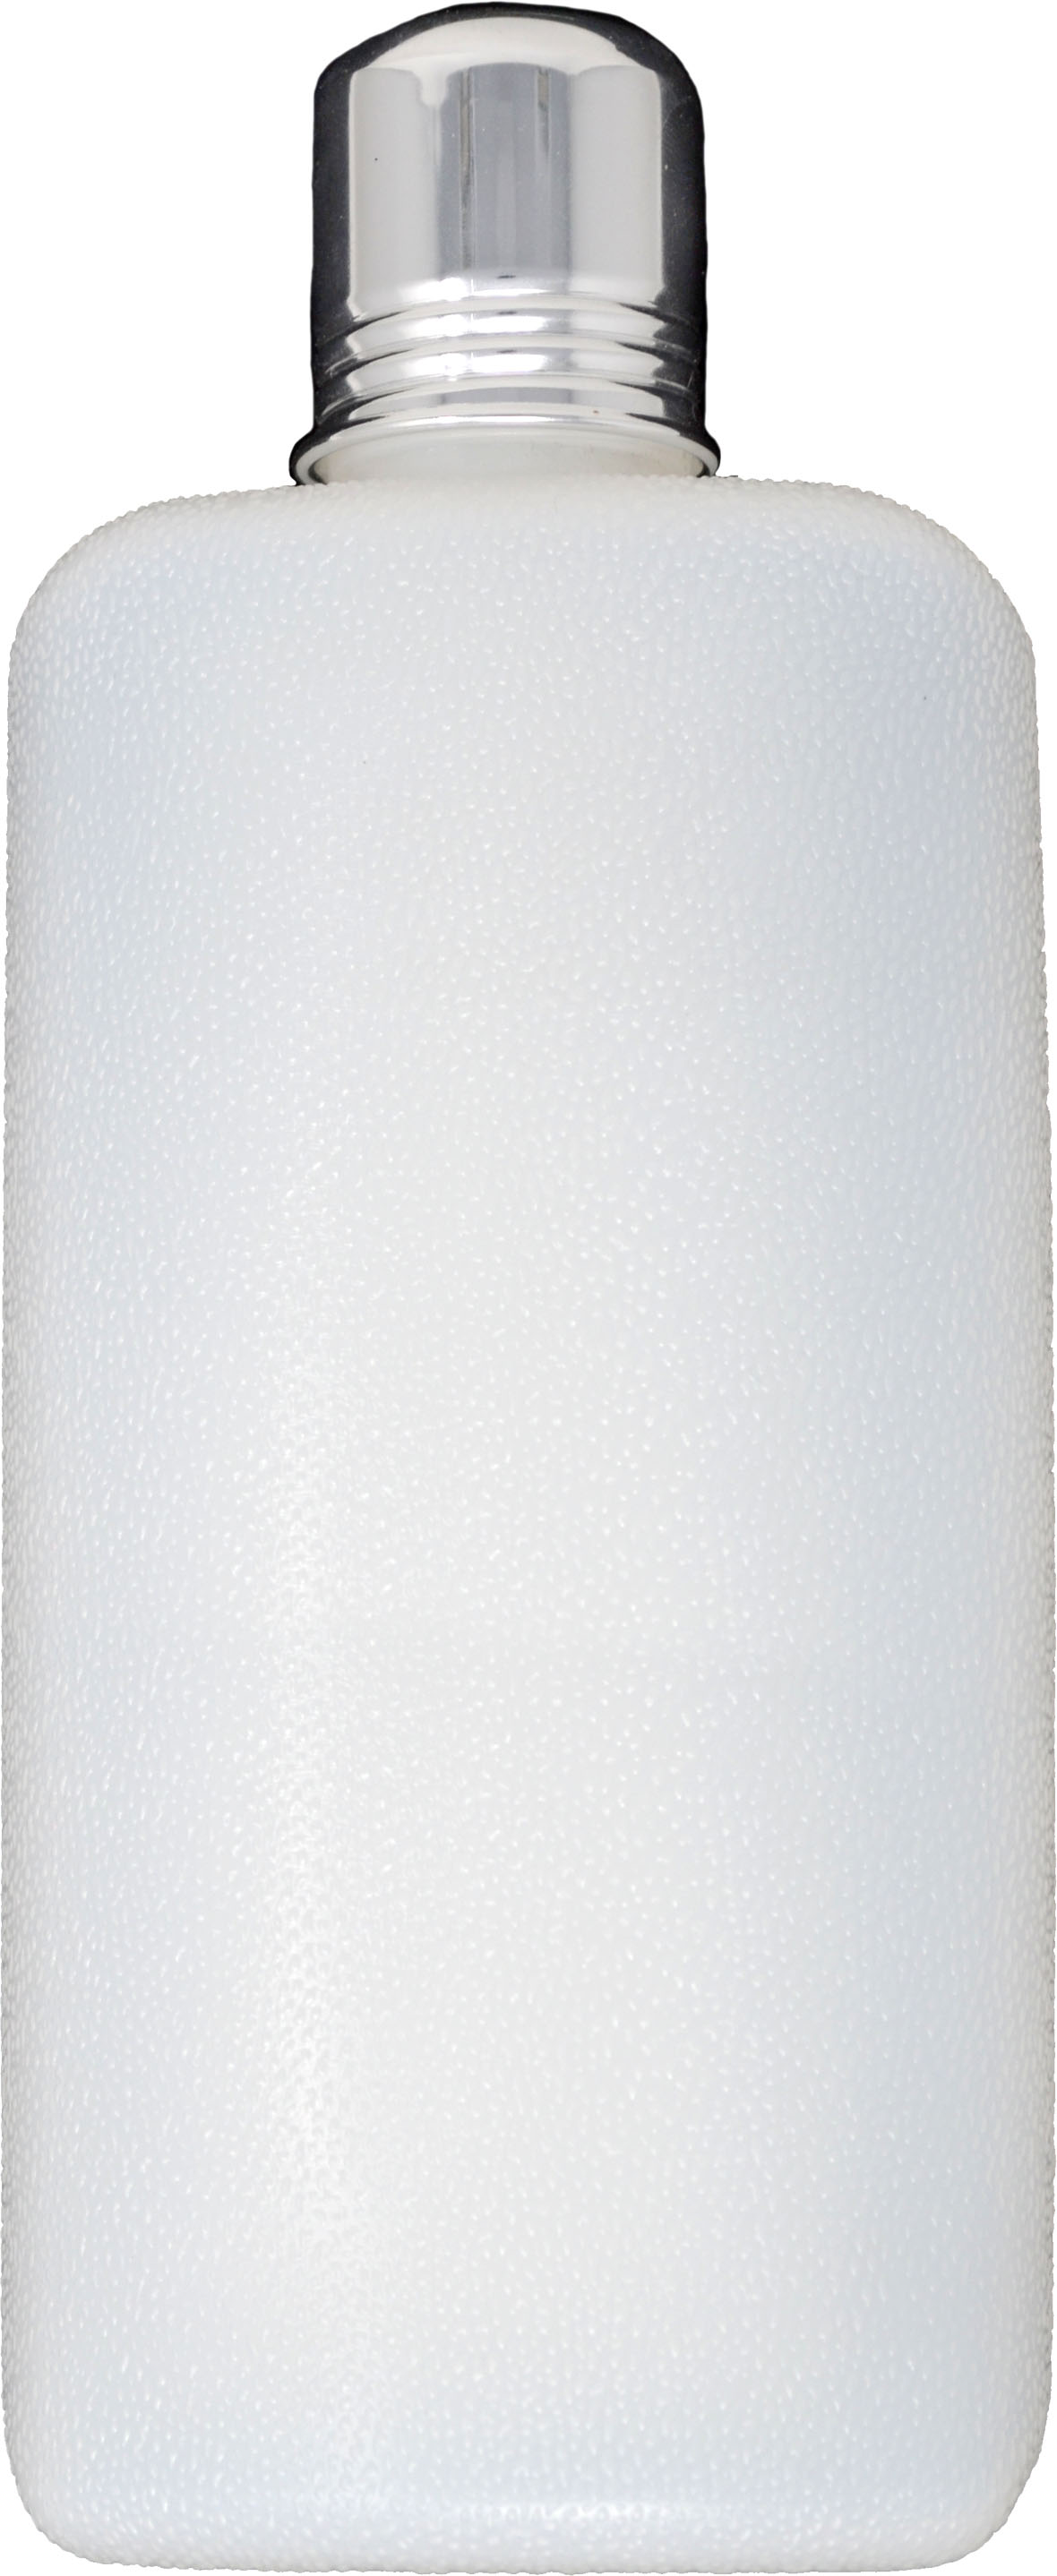 Plastic Flask - 16 oz